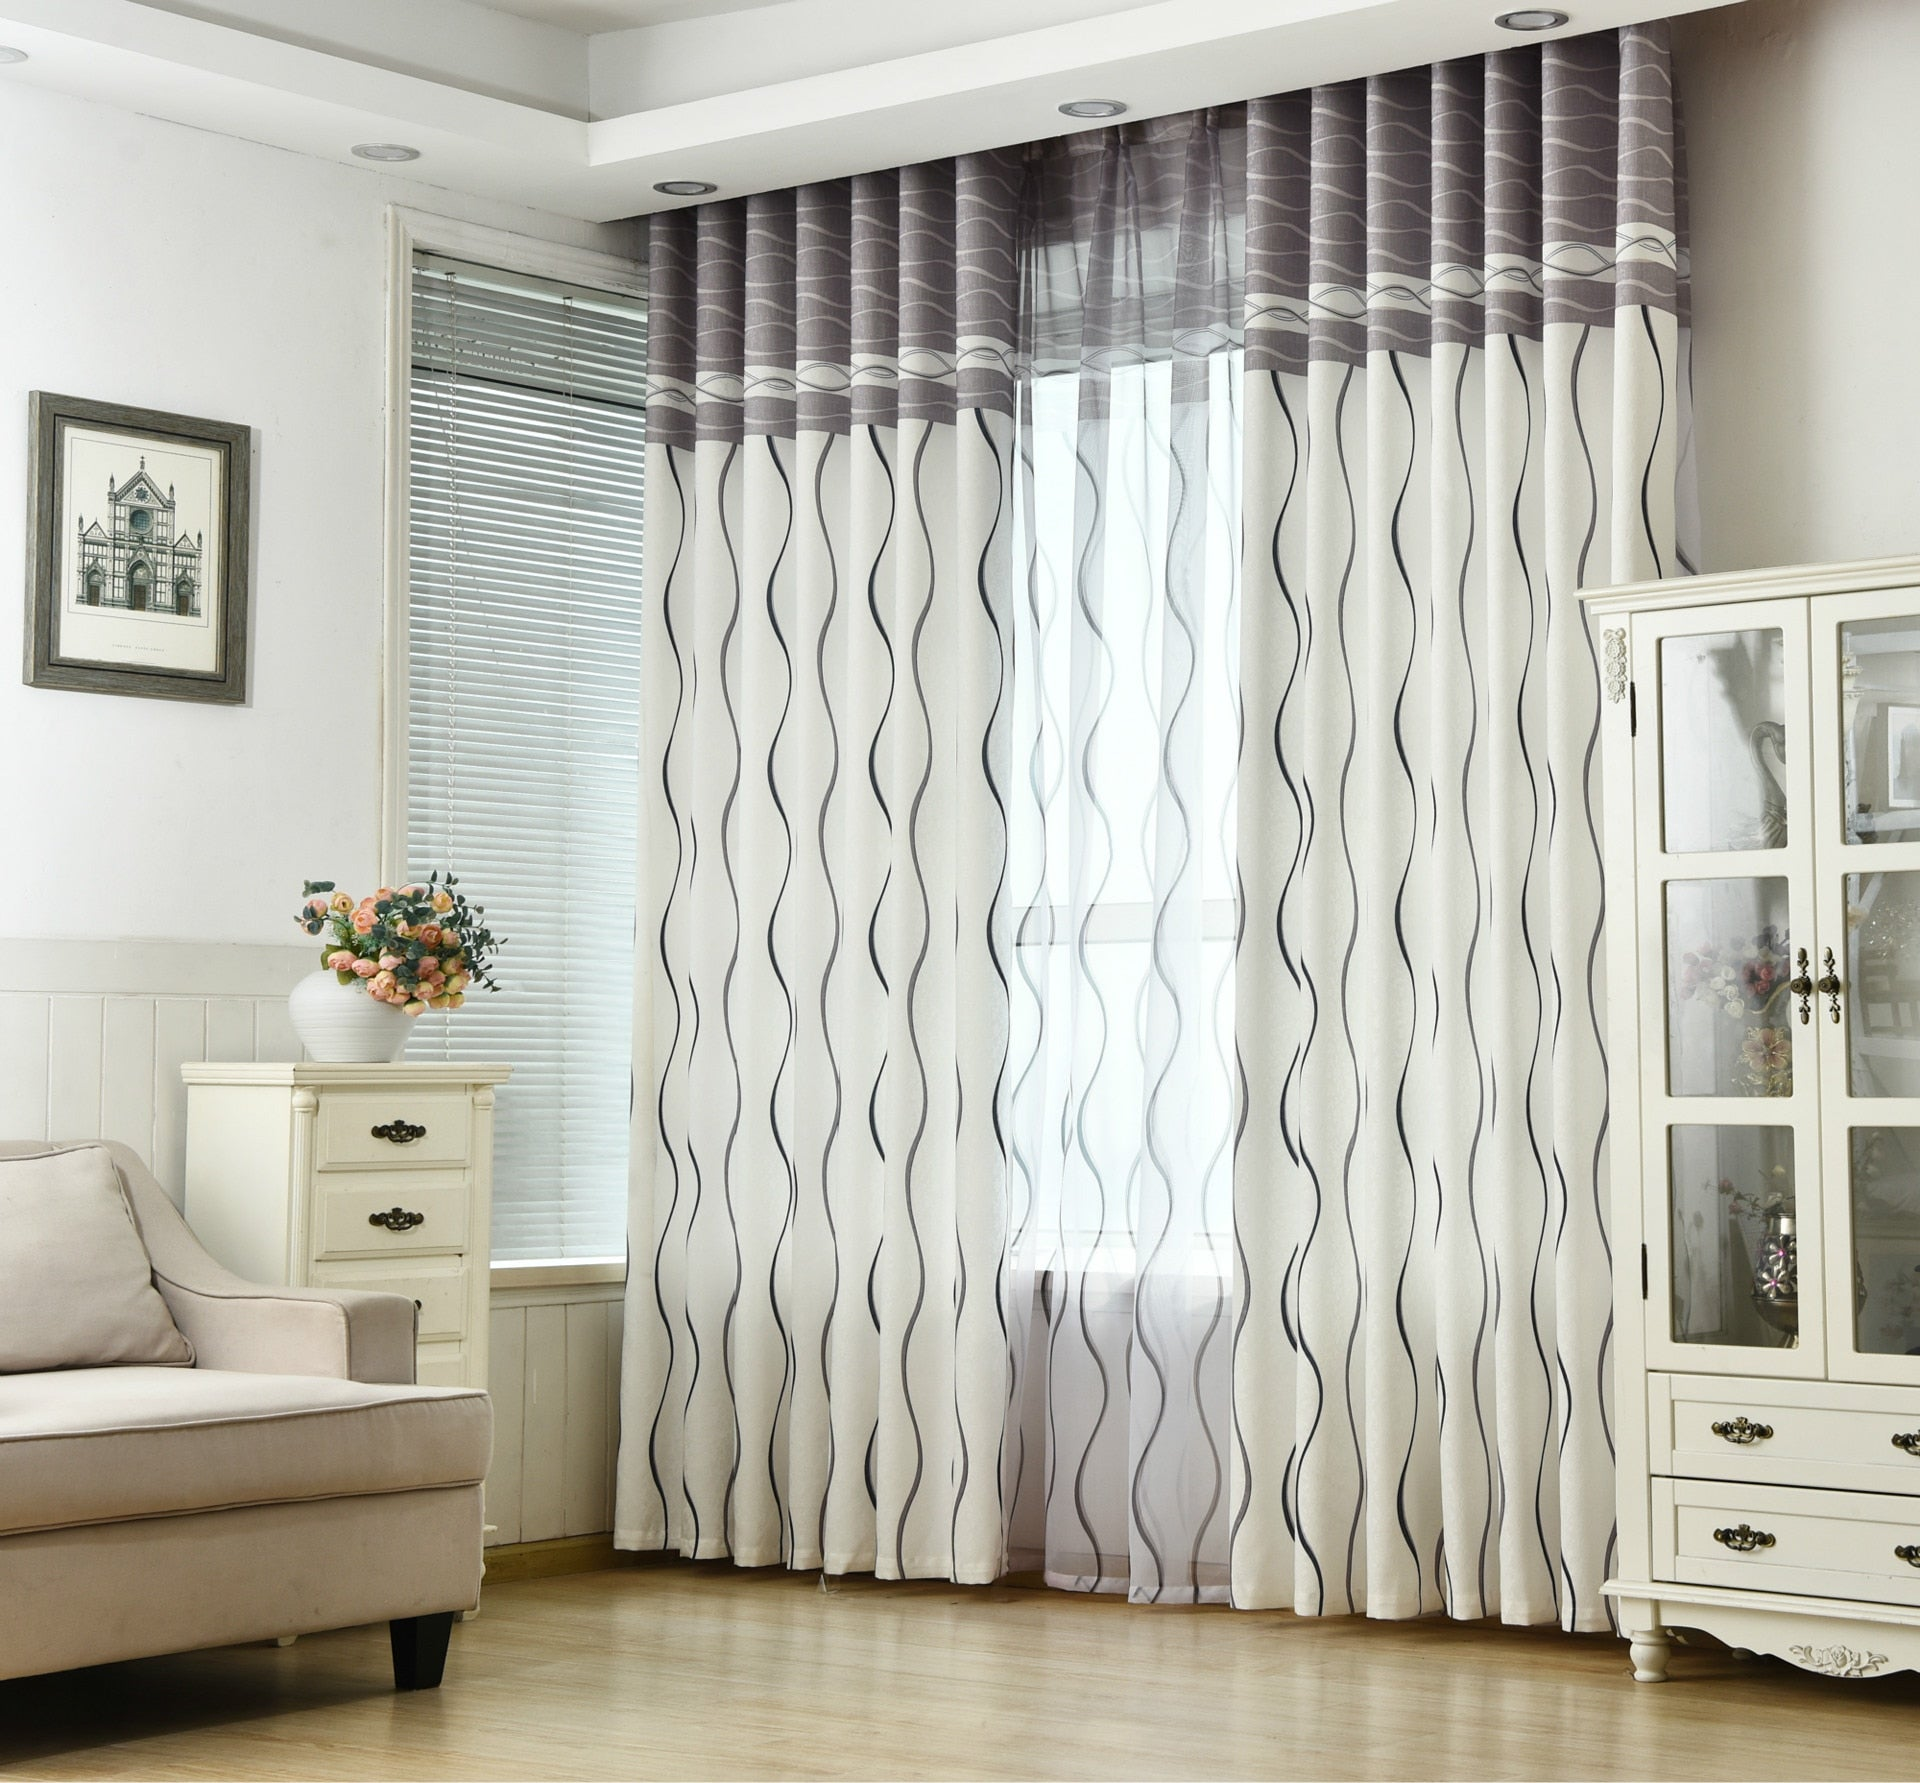 Classic Black and White Geometric window Curtain